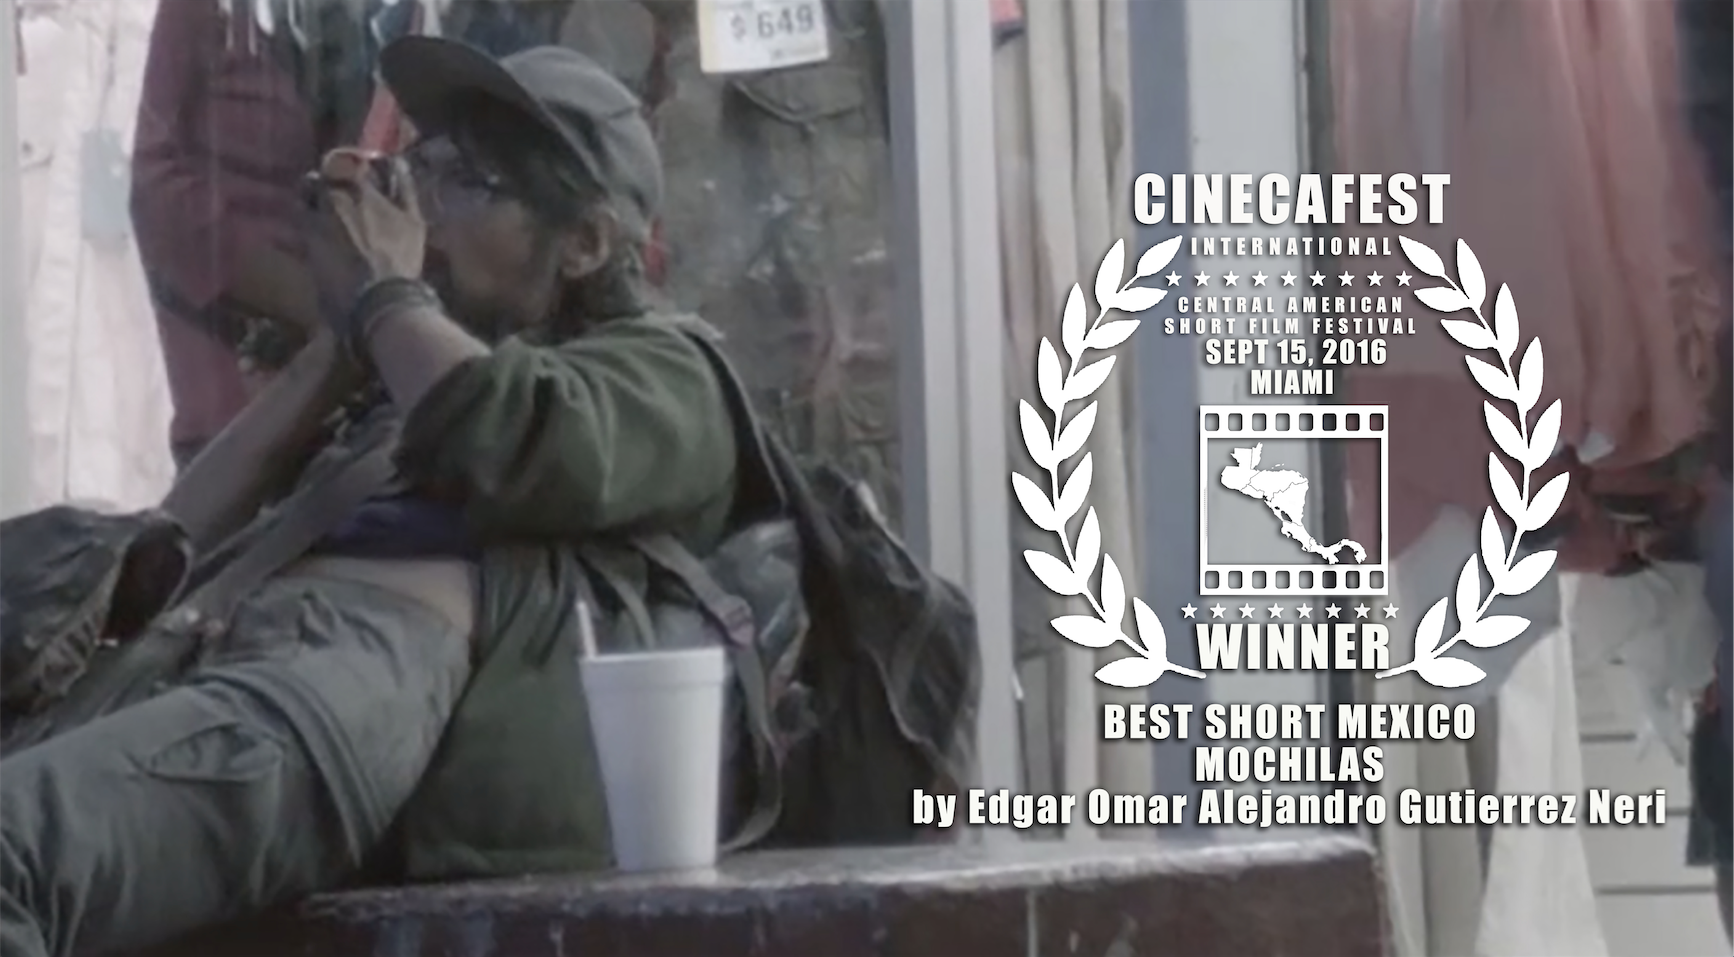 CINECAFEST BEST SHORT MEXICO MOCHILAS.png